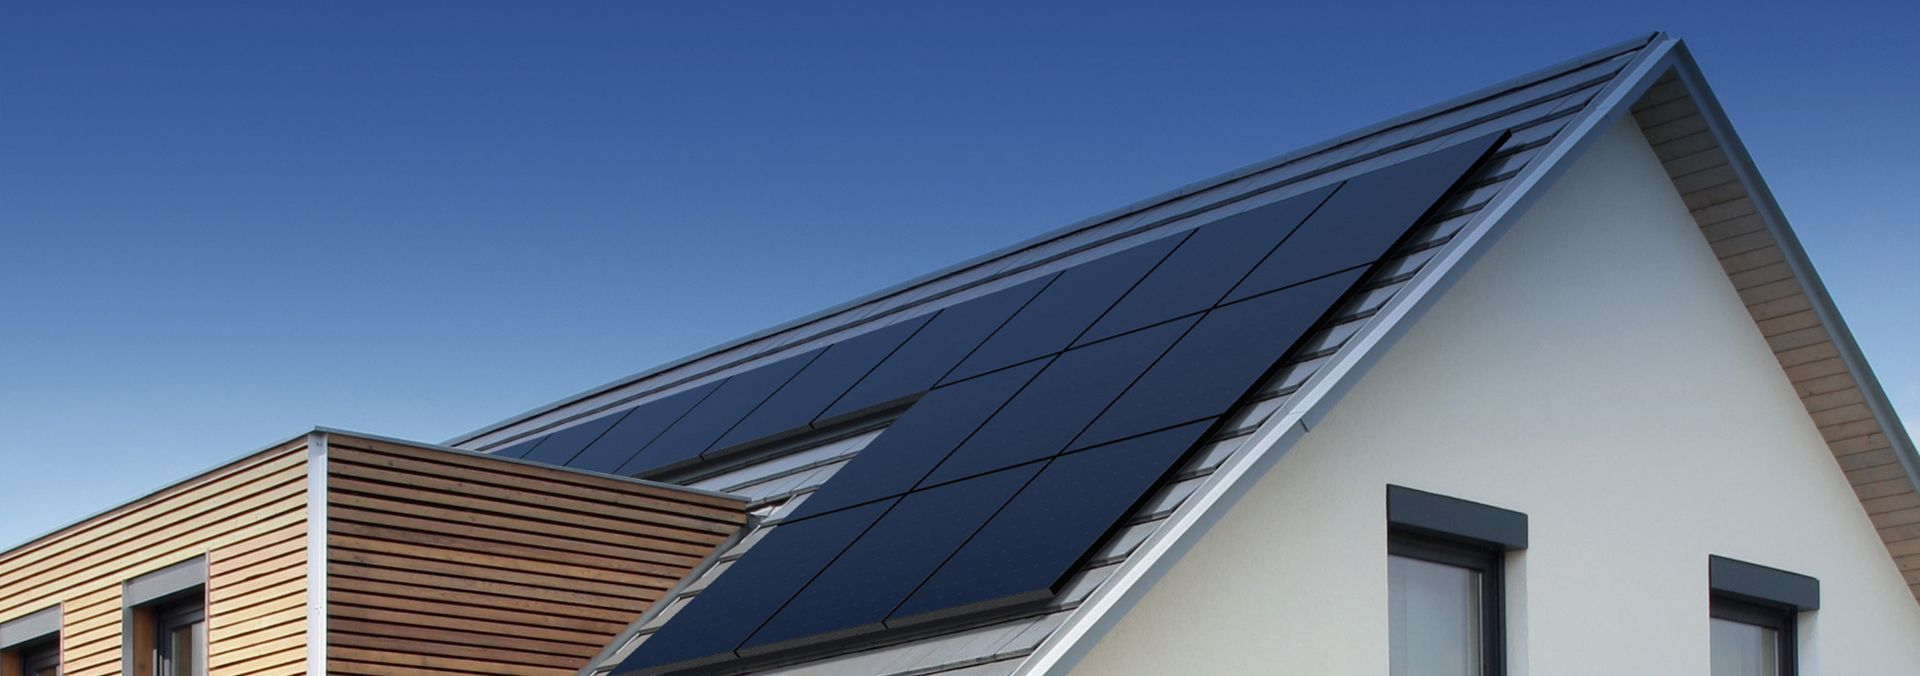 rooftop solar panels on an Australian home